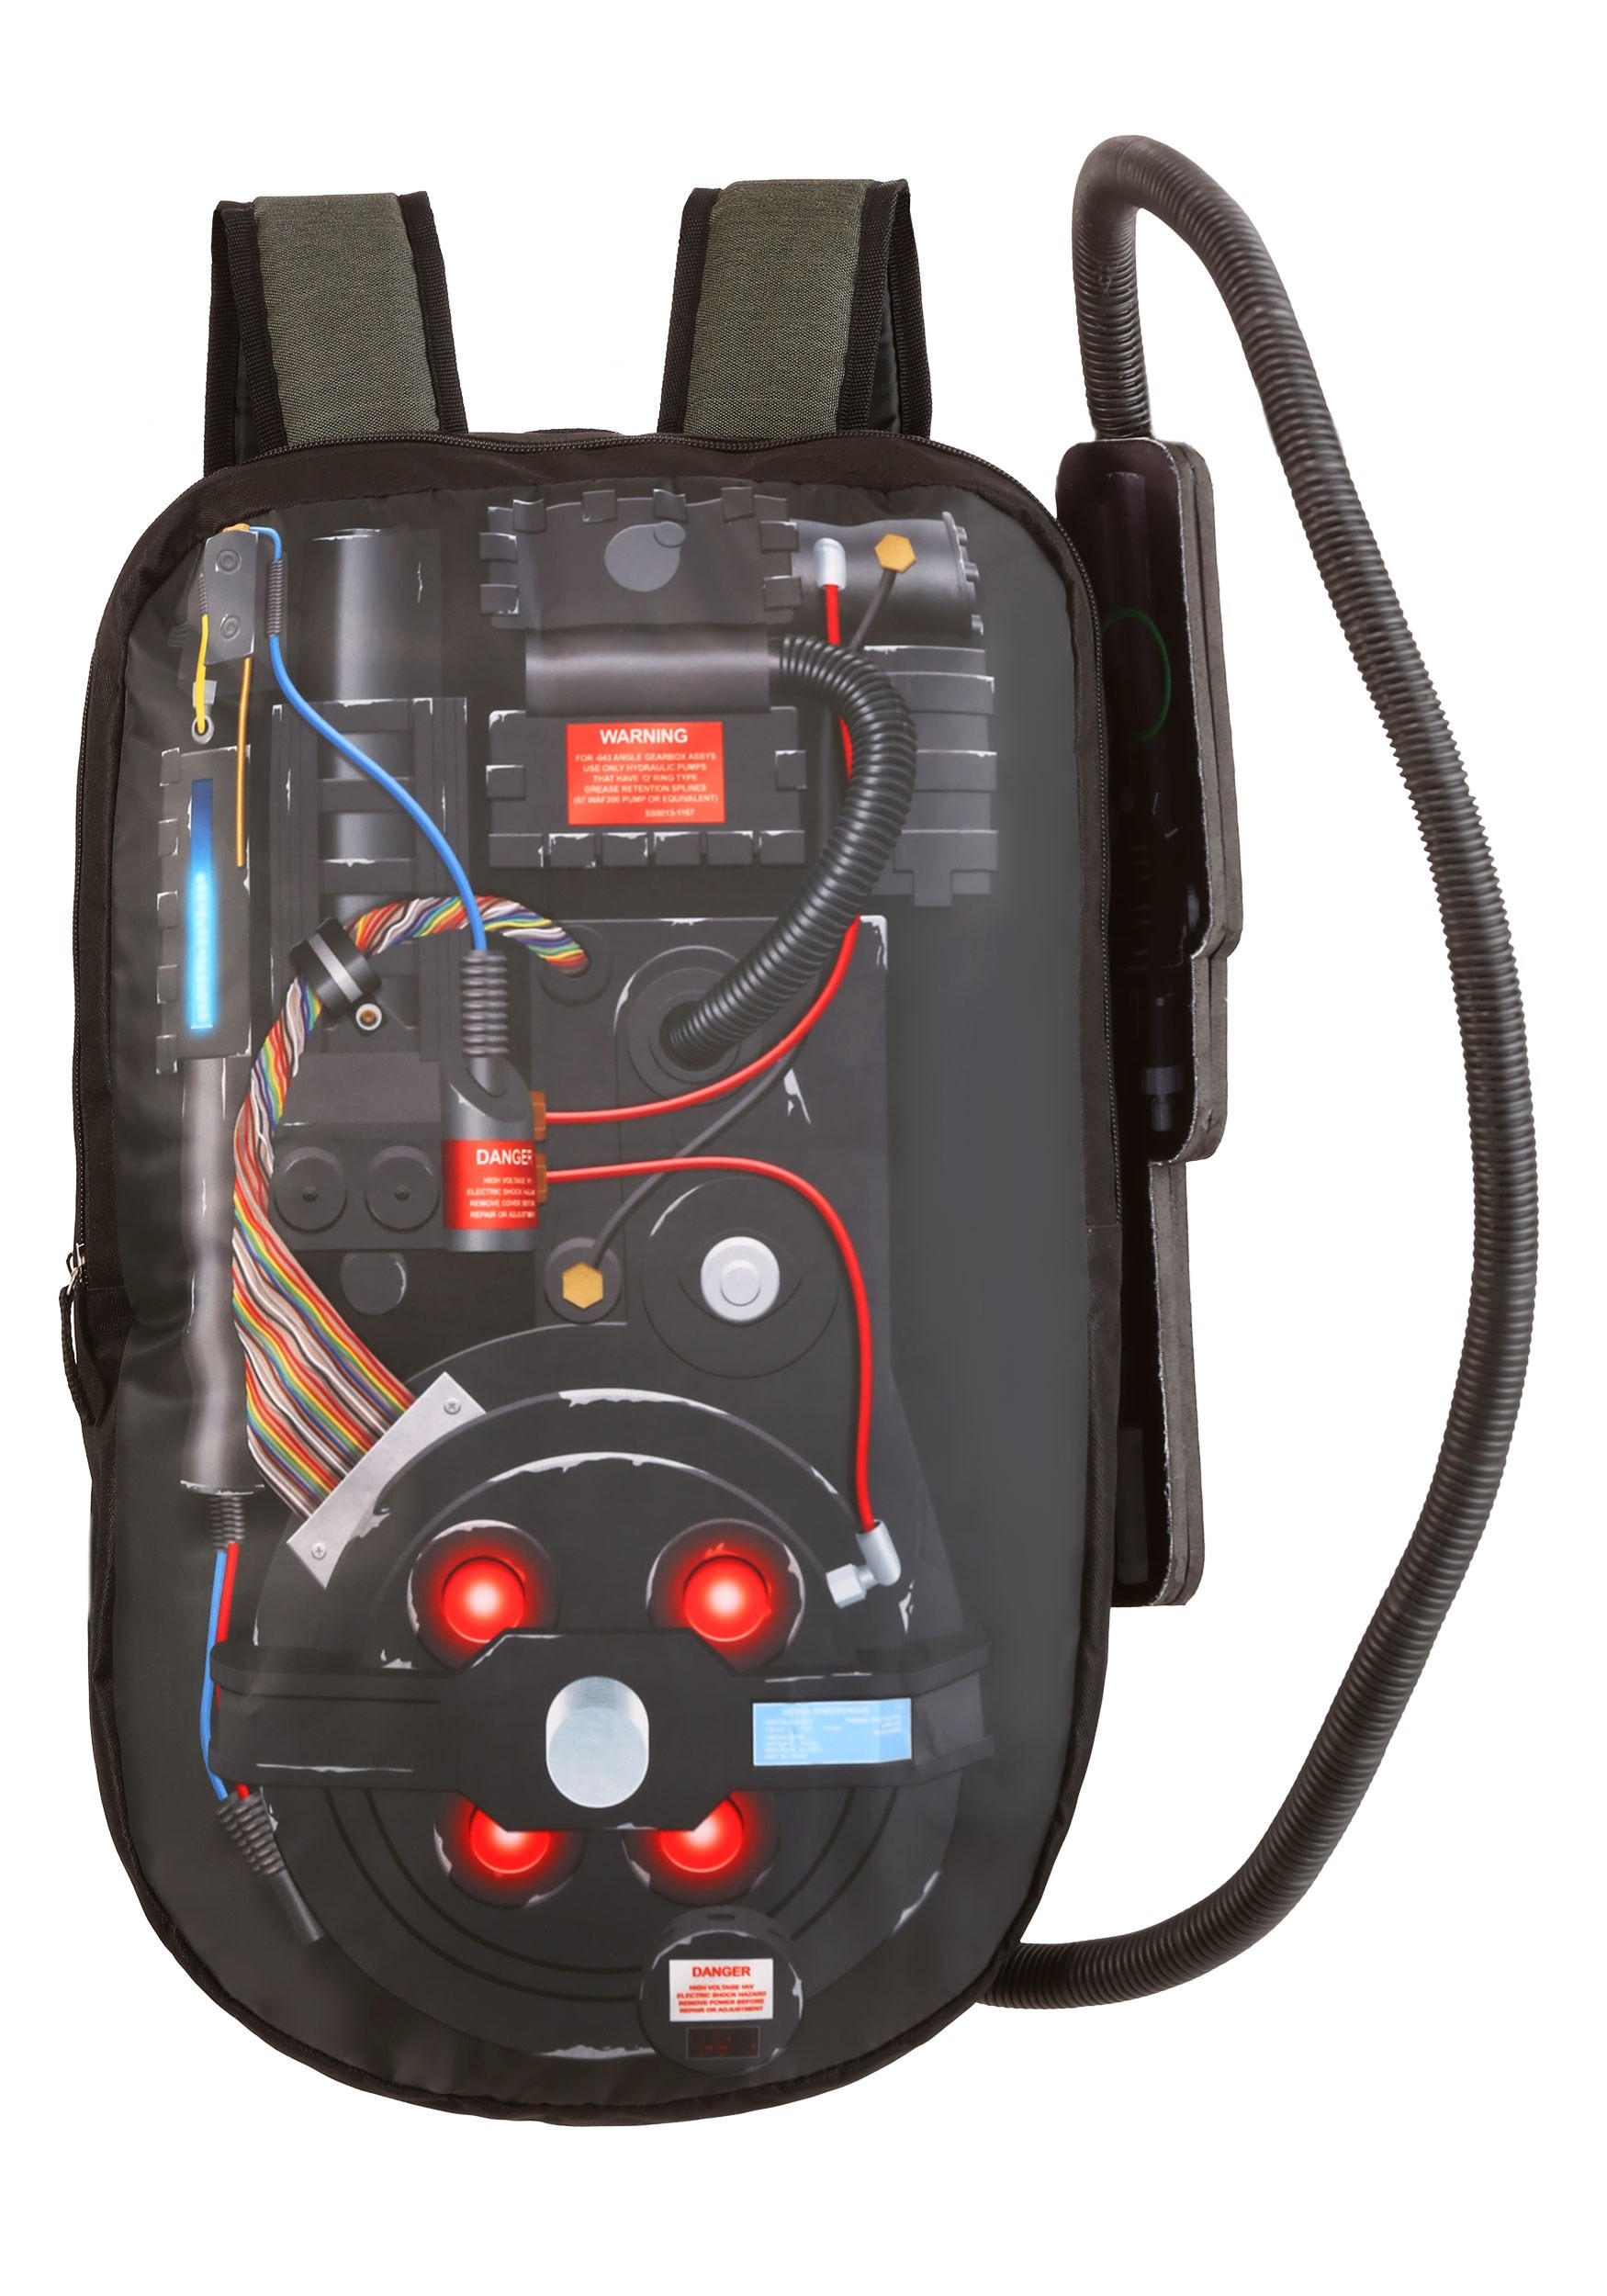 Deluxe Proton Pack w/ Wand Costume Accessory Ghostbusters